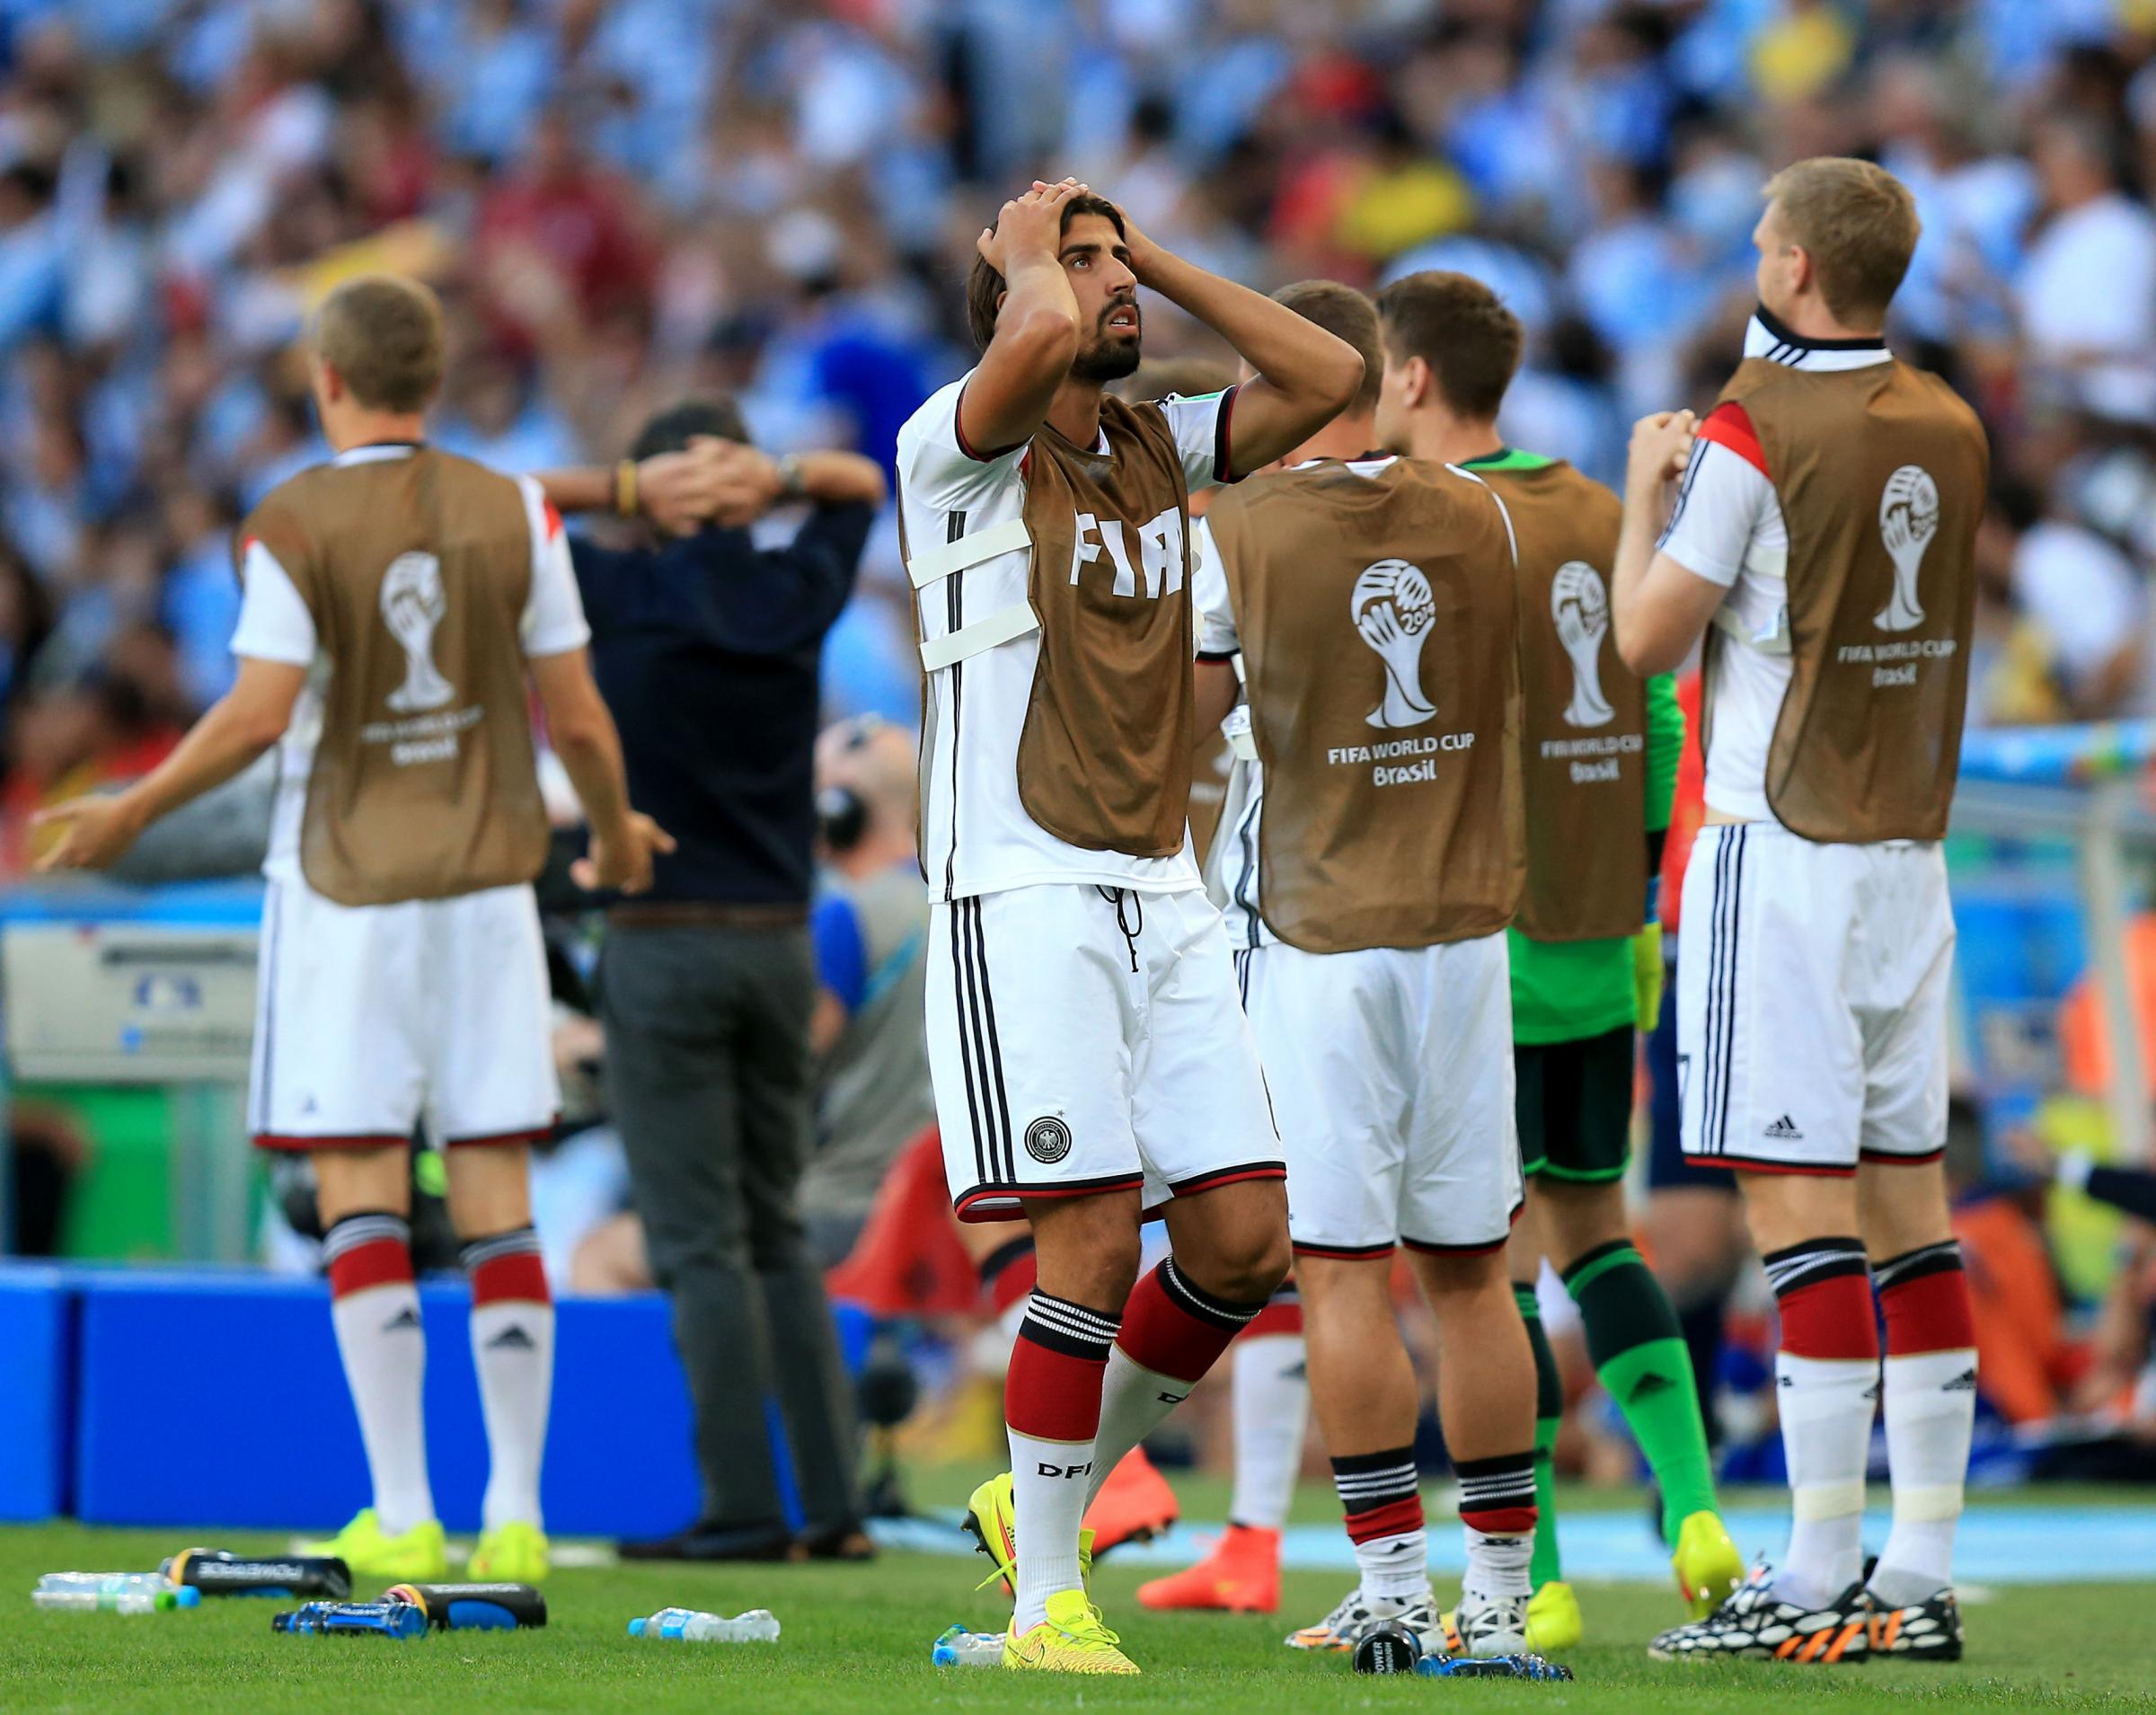 AGONY WATCHING: Germany midfielder Sami Khedira, centre, was ruled out of the World Cup final after sustaining an injury during his team's warm-up